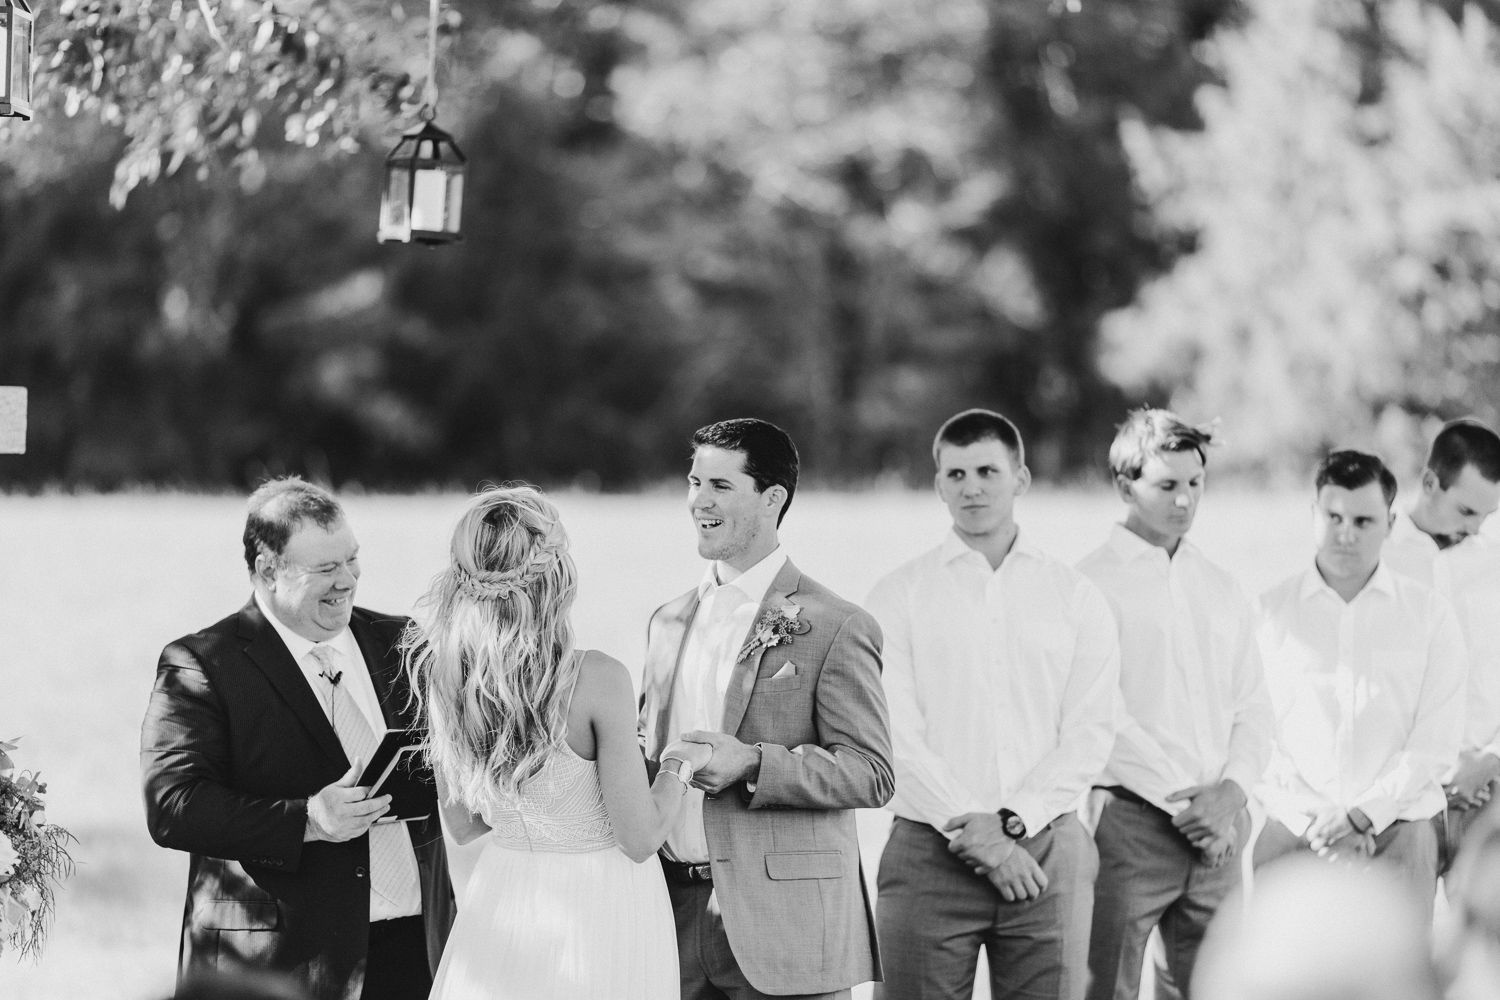 northcarolinaweddingphotographer-68